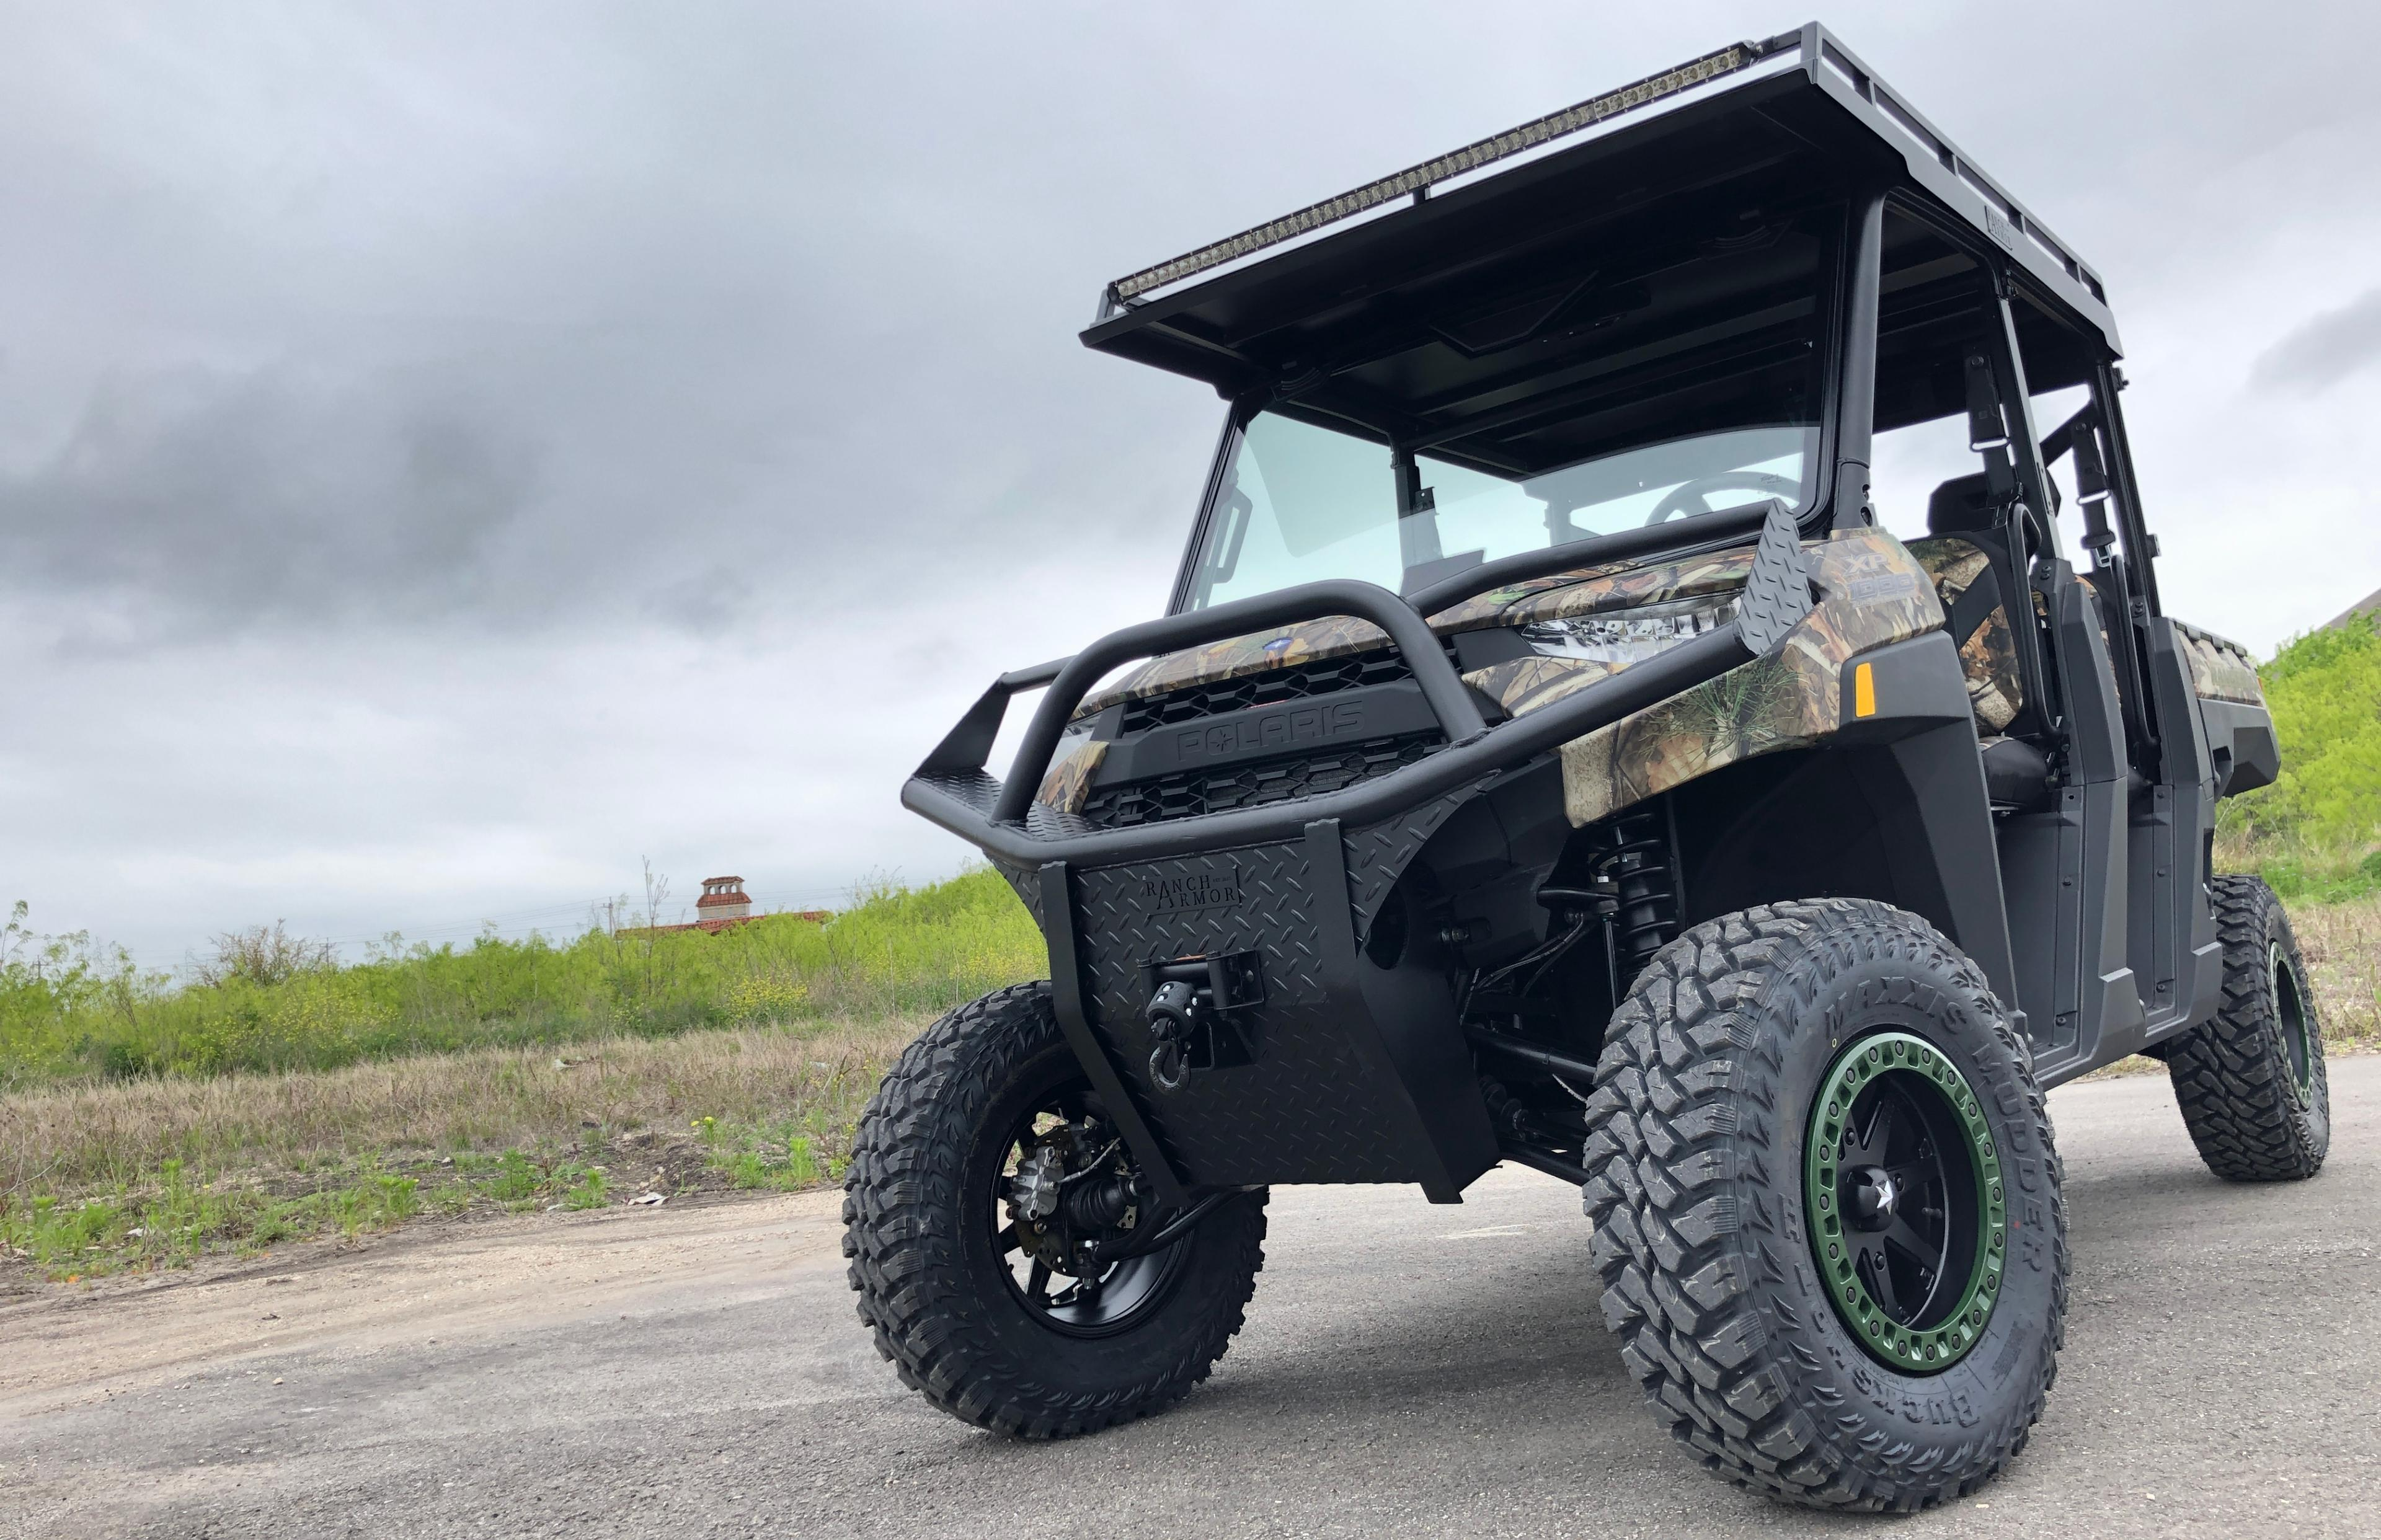 2019-polaris-ranger-1000-front-bumper-replacement-and-metal-roof-by-ranch-armor-texas-outdoors-utv-outfitters.jpg